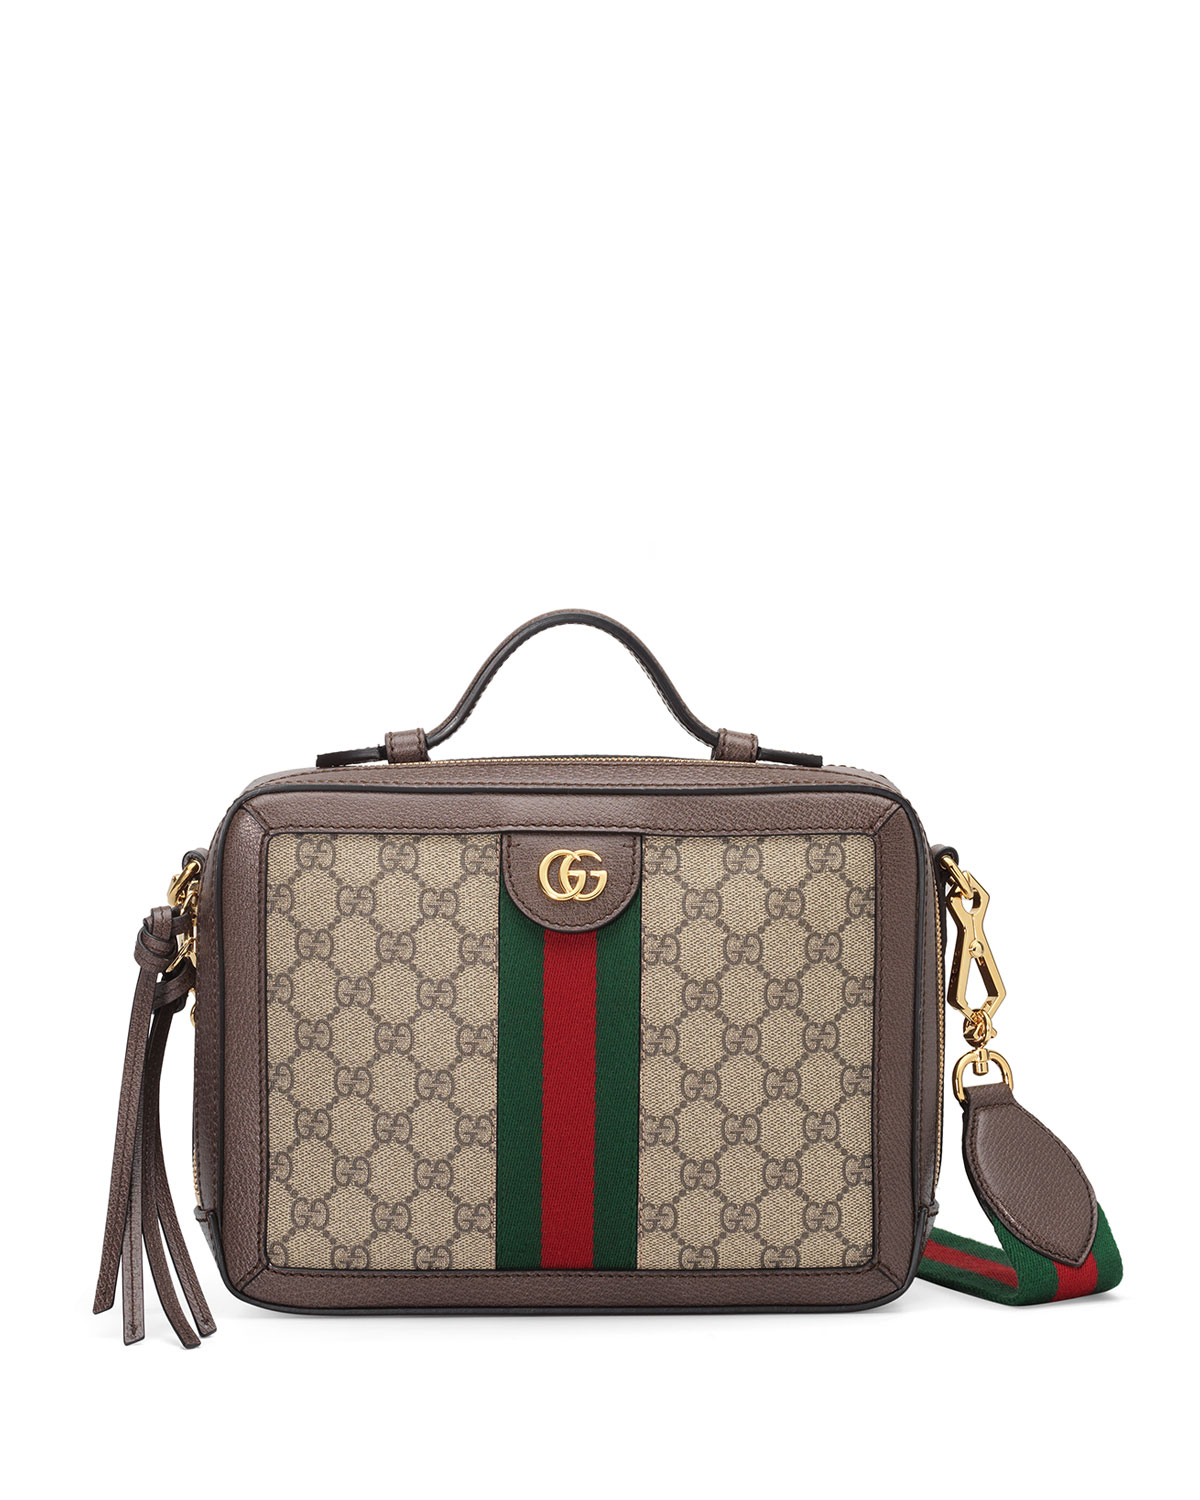 38ede1fd99c3 Gucci Ophidia Small GG Supreme Shoulder Bag | Neiman Marcus